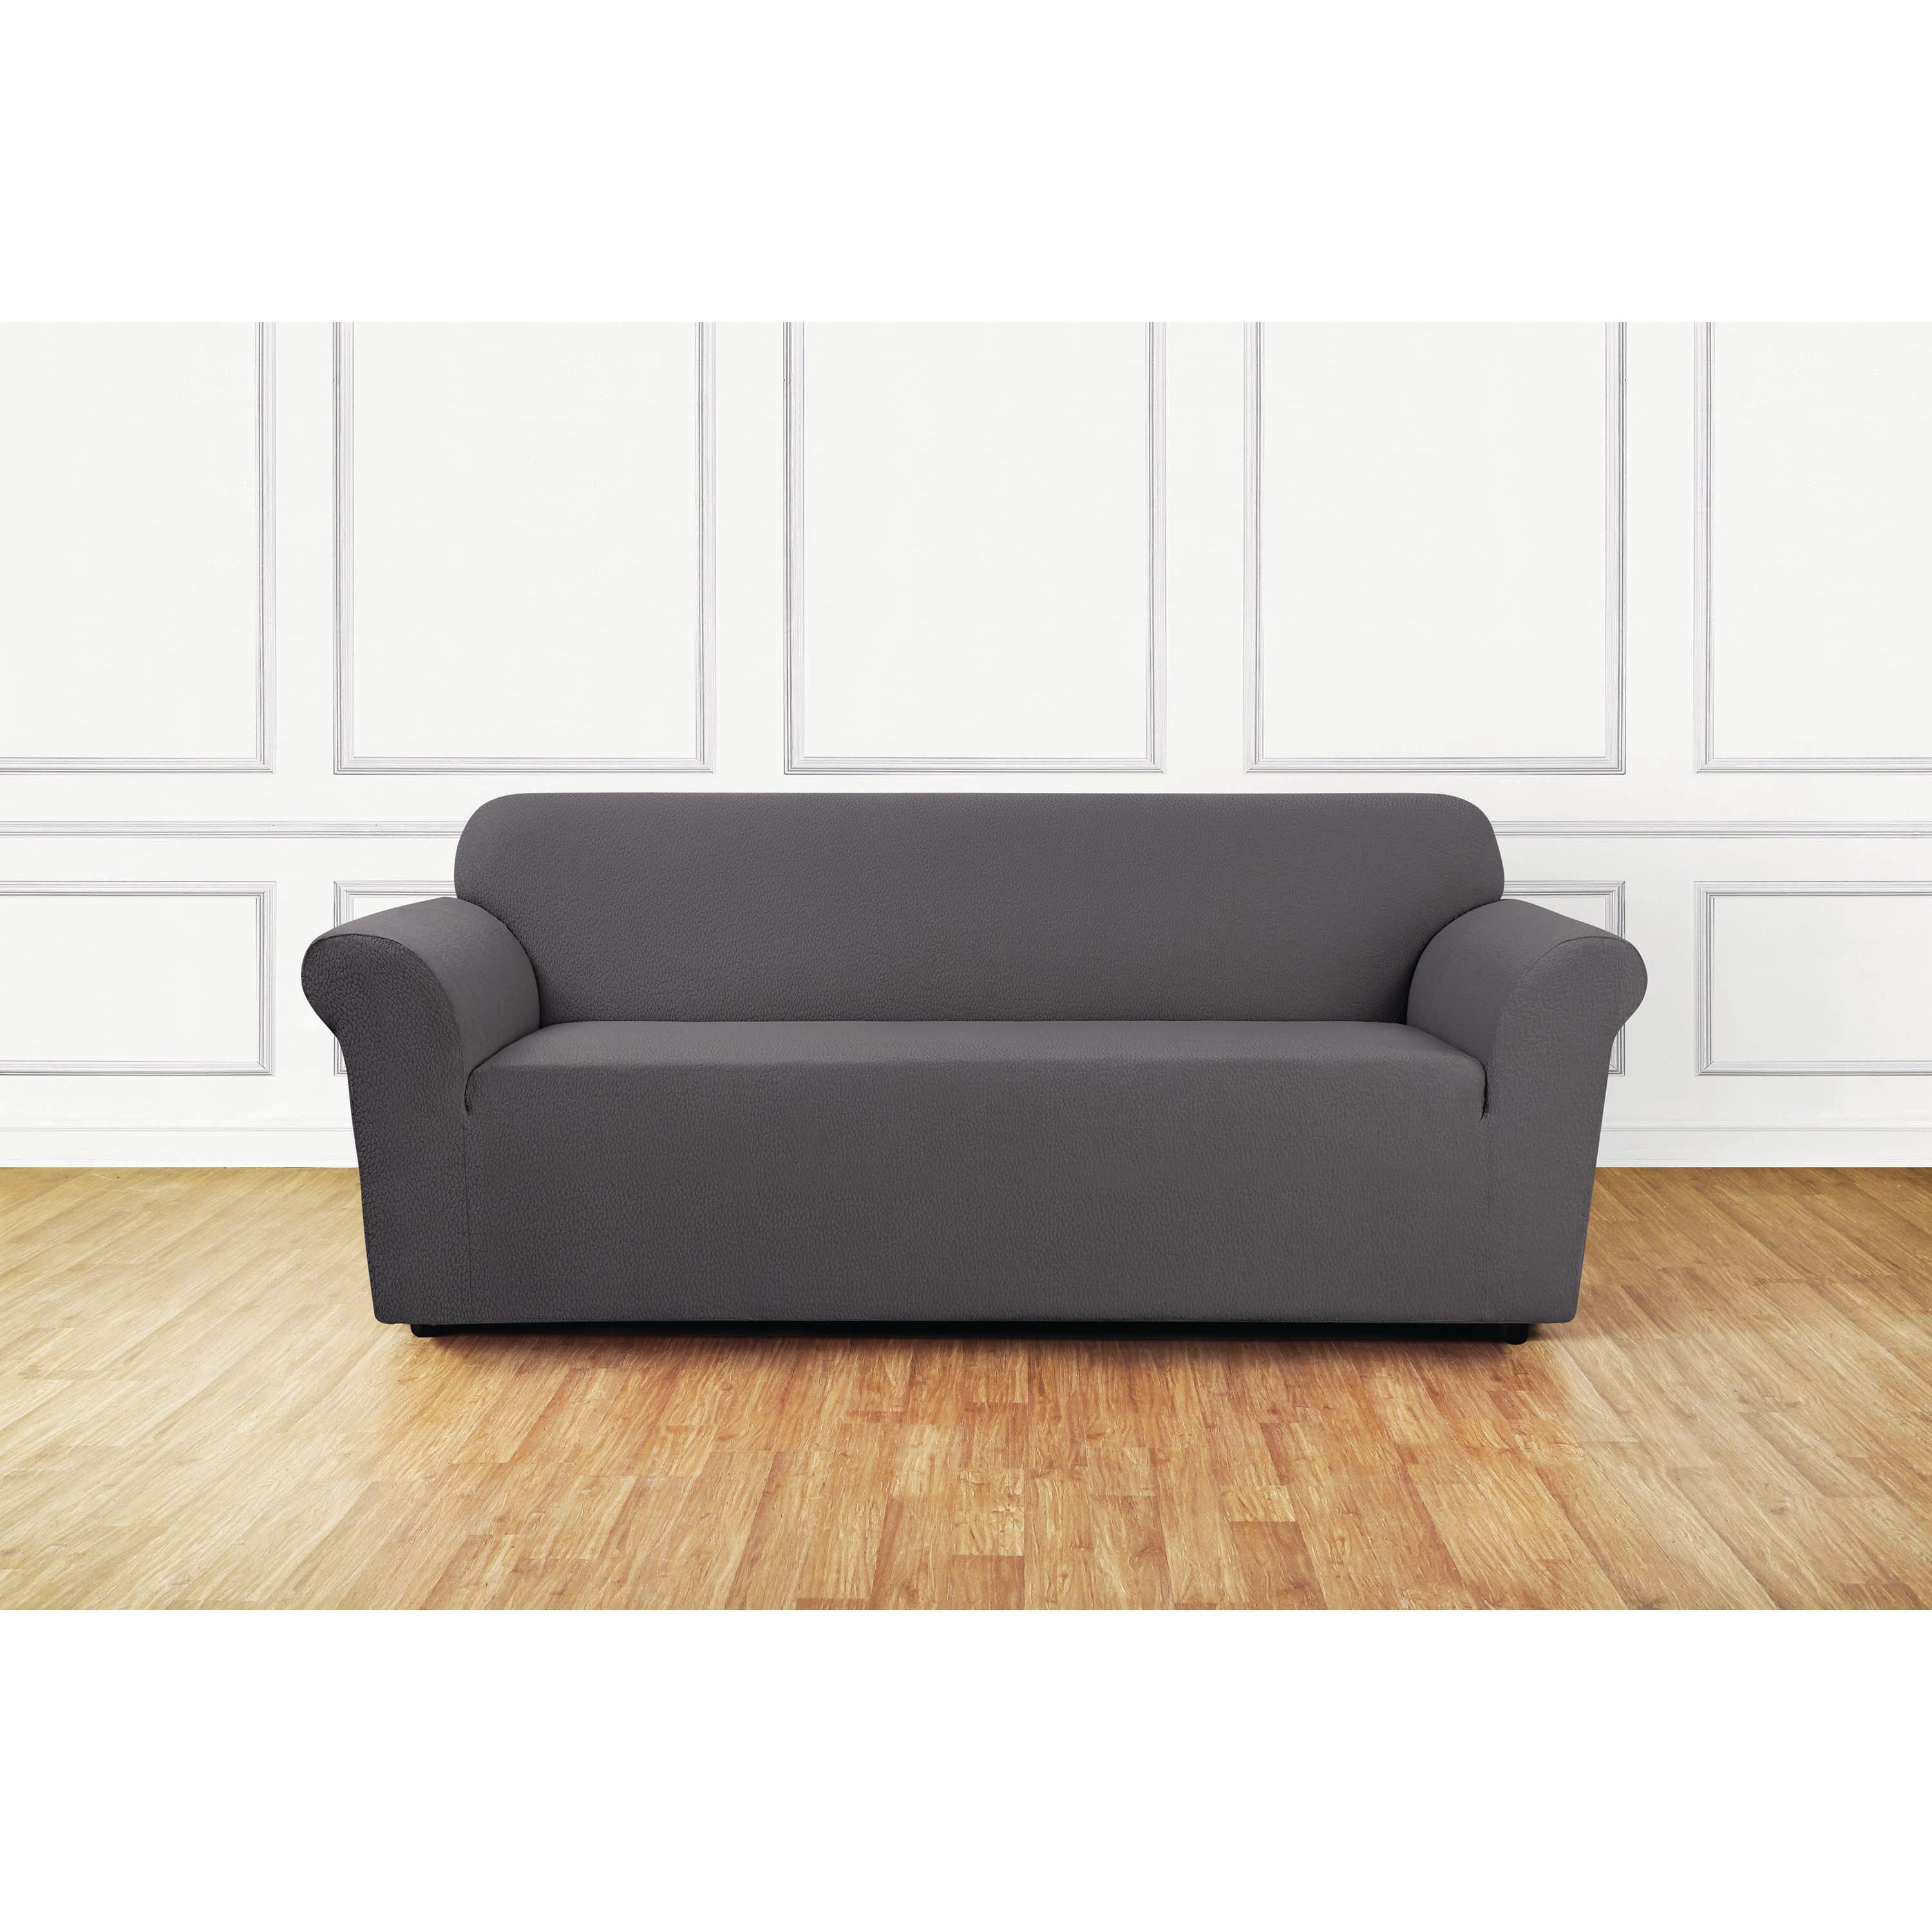 Grey Sofa Slipcovers Home Goods Free Shipping On Orders Over 45 At Your Get 5 In Rewards With Club O